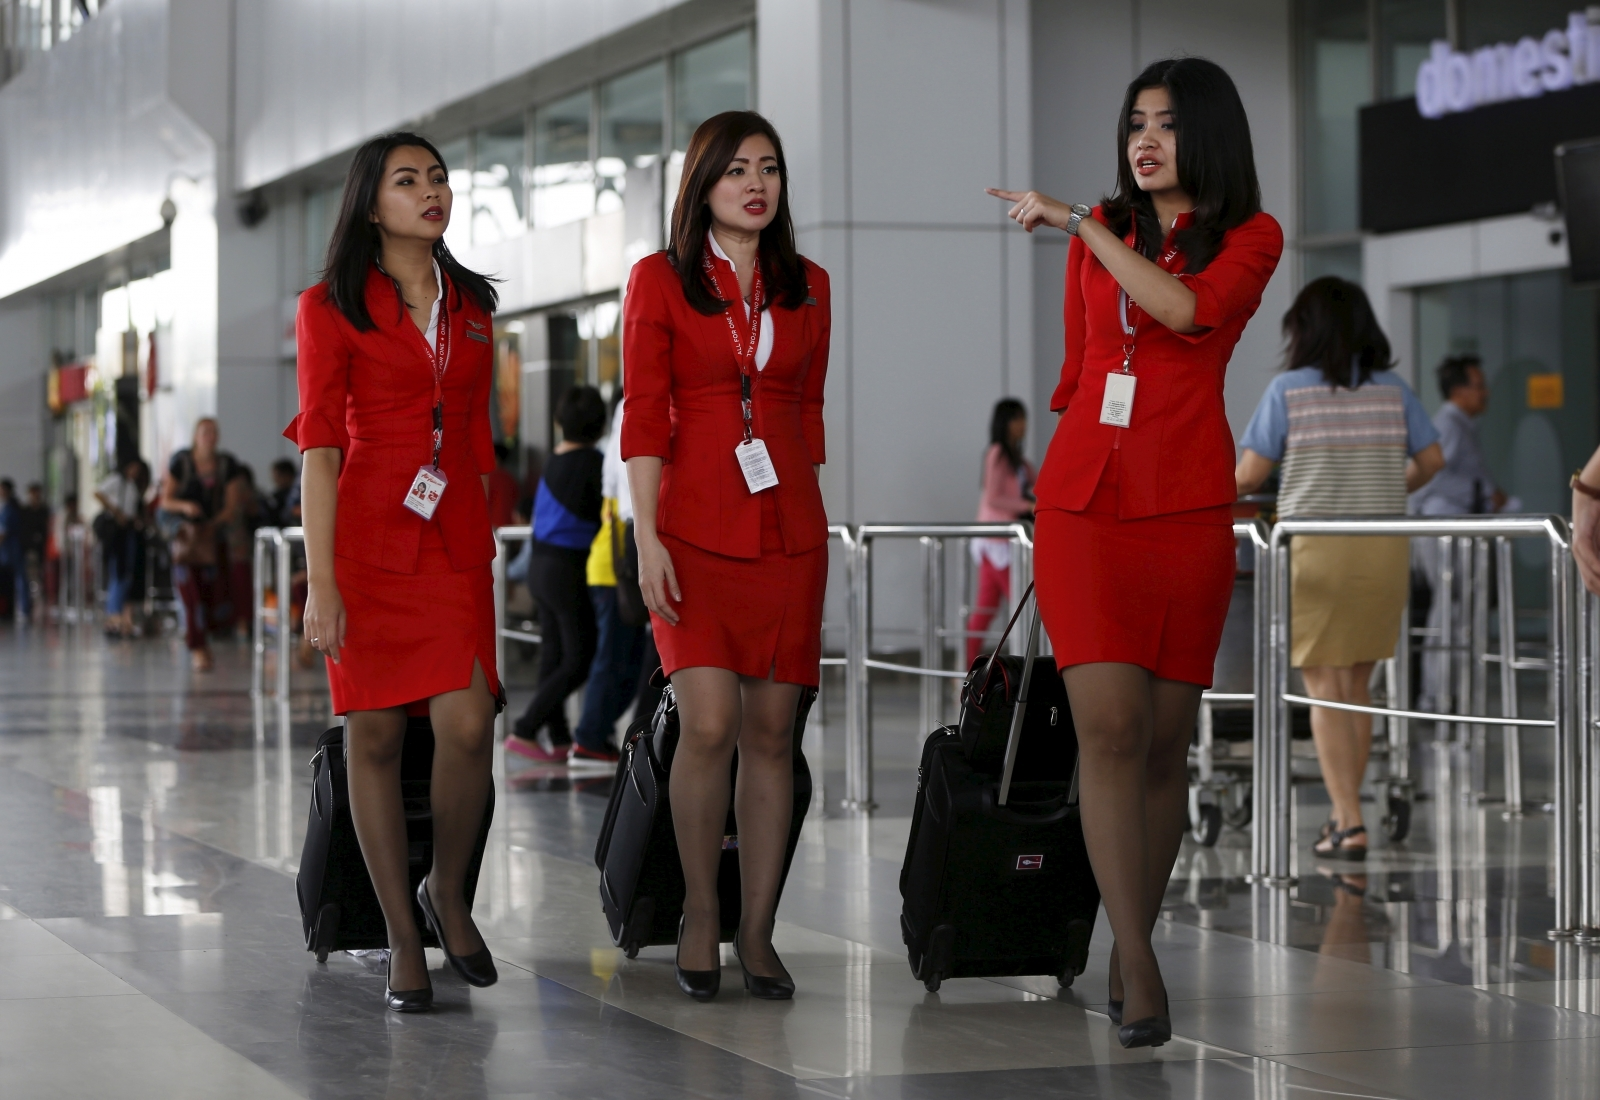 Uniforms worn by stewardesses on Malaysian airlines